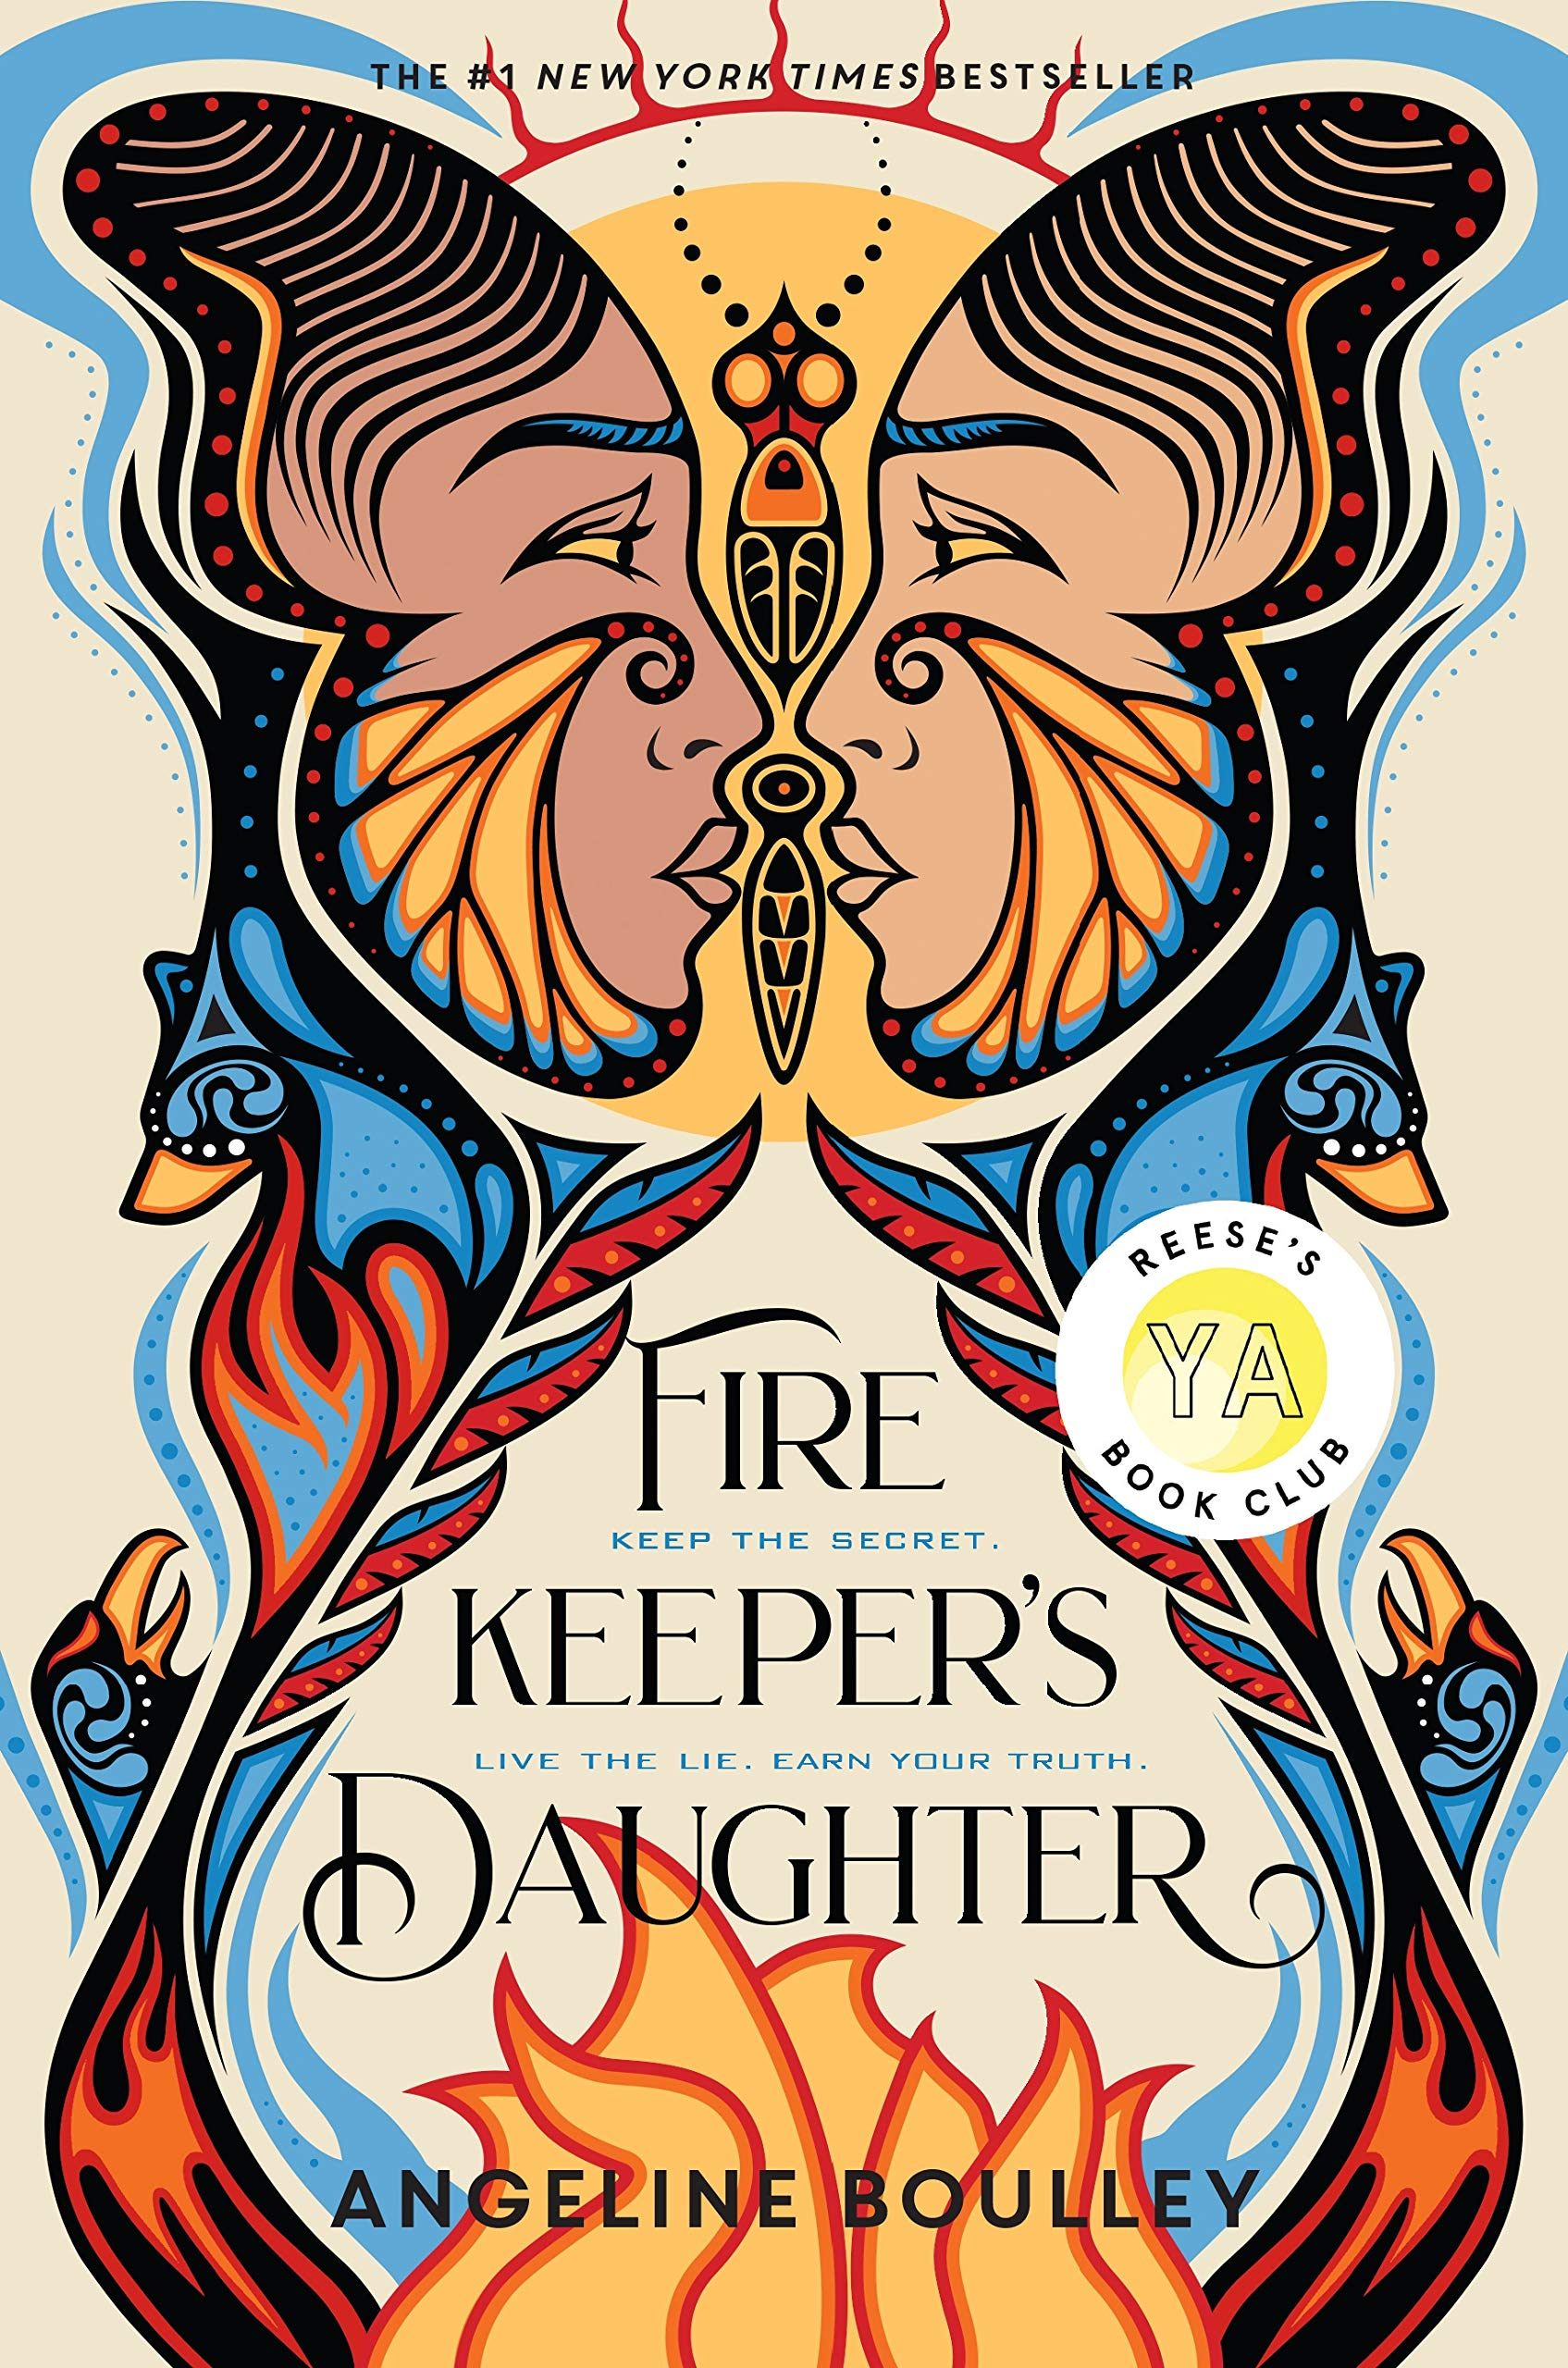 Amazon.com: Firekeeper's Daughter (9781250766564): Boulley, Angeline: Books